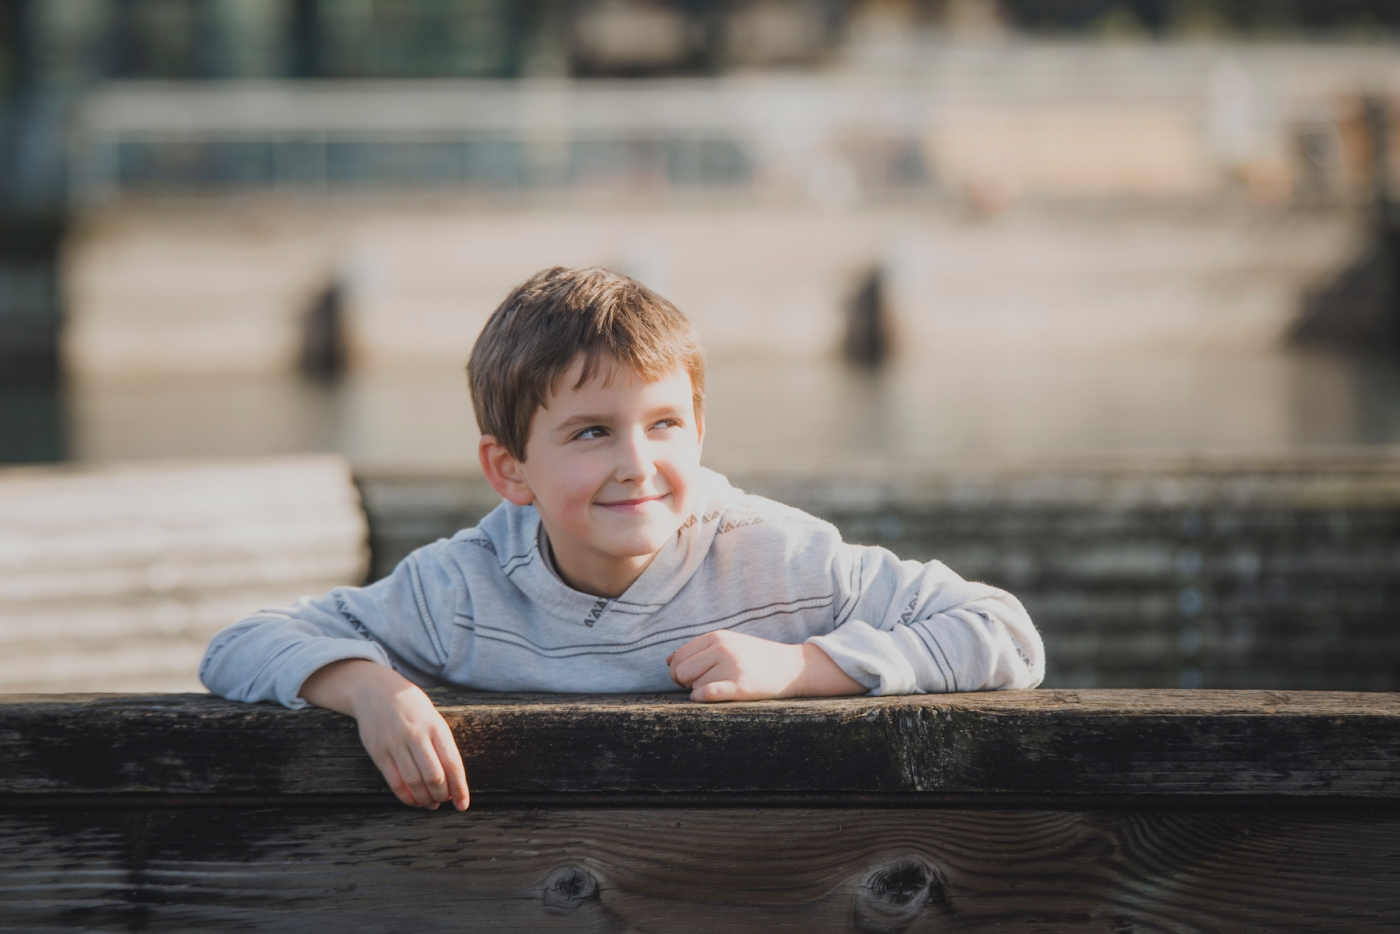 janes_photography_2016_coulon_park_renton_family_session_spencer8134